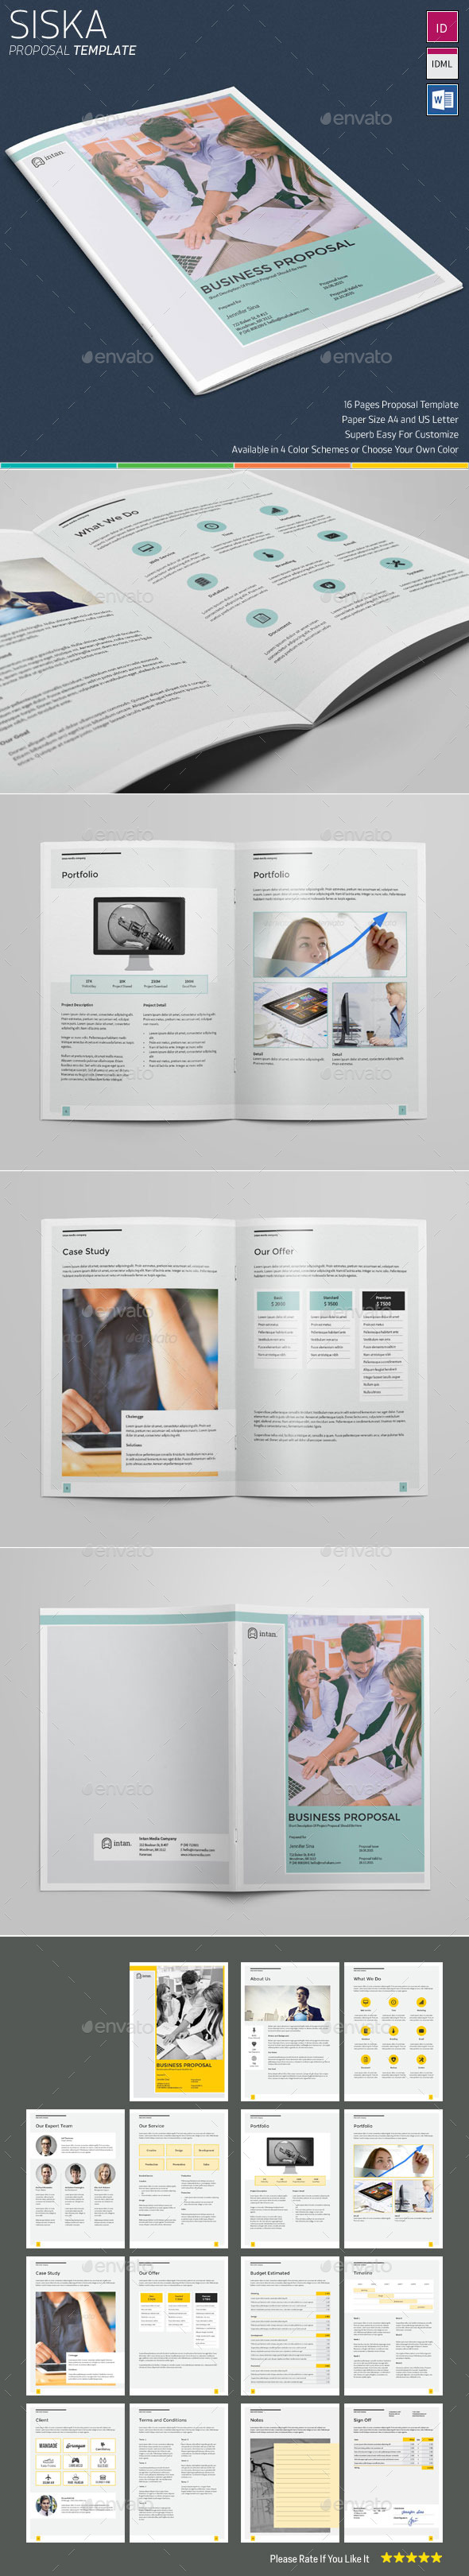 Siska Proposal Template - Proposals & Invoices Stationery